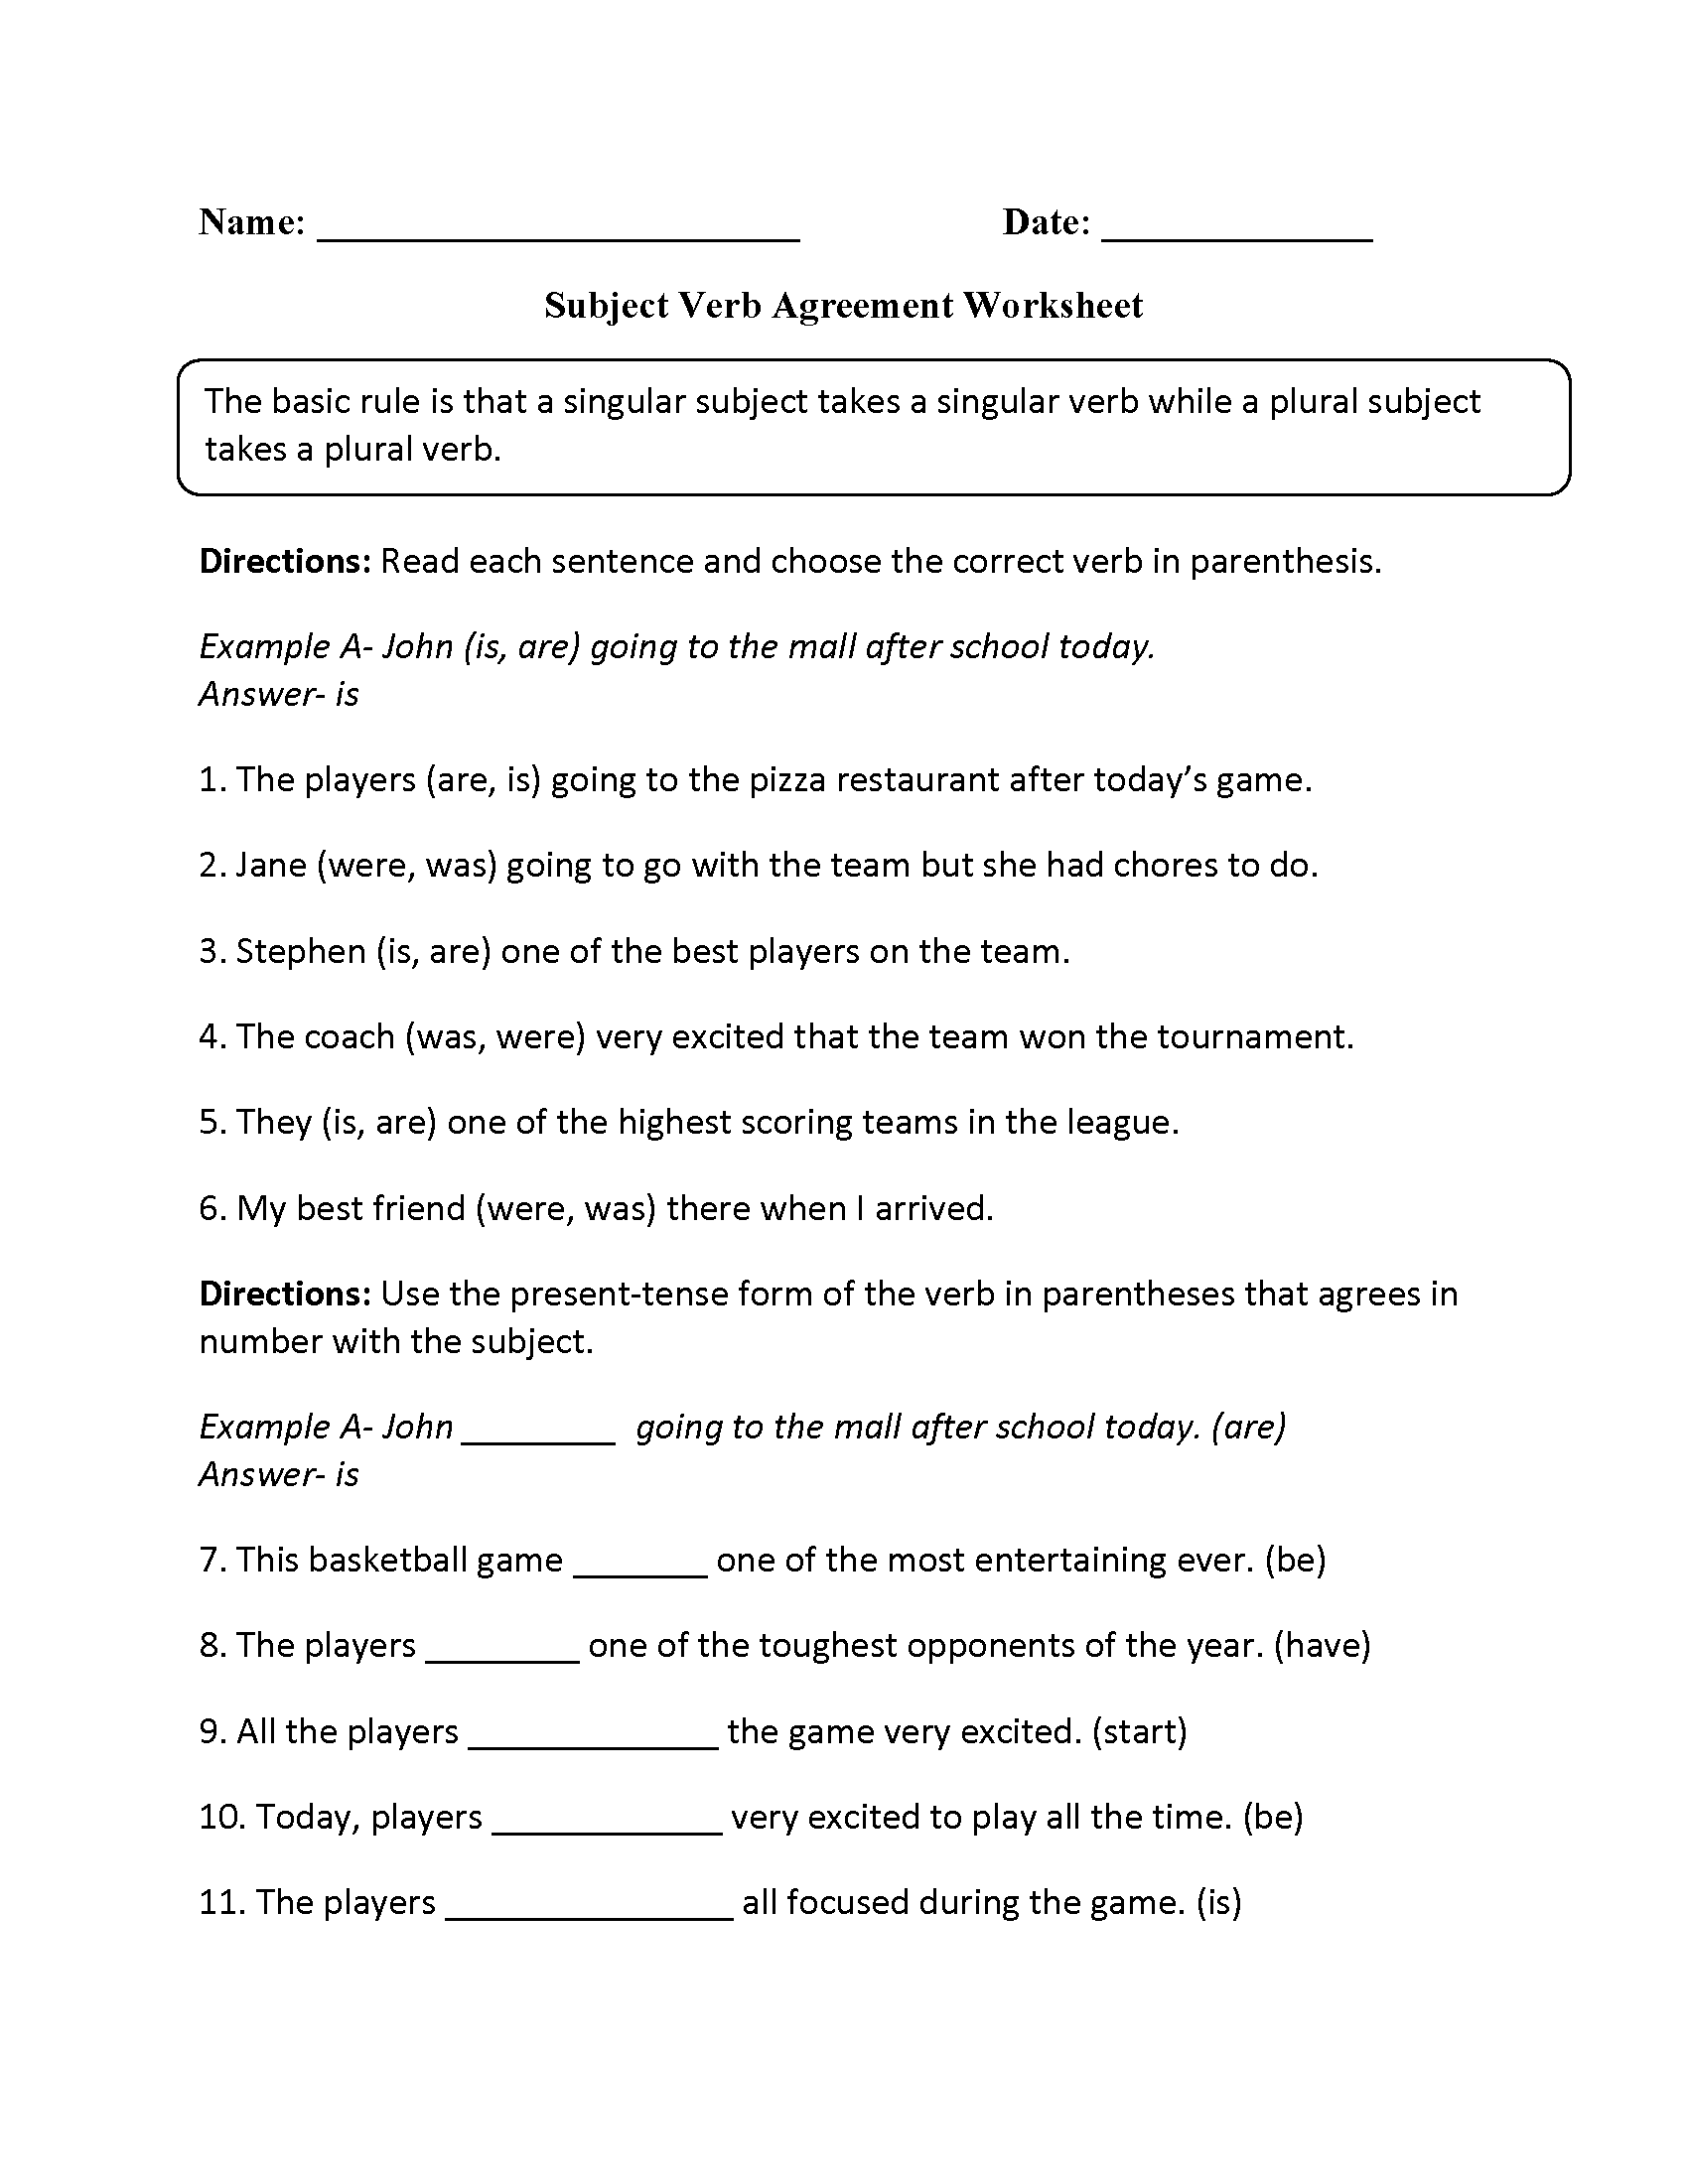 Grade 7 Subject Verb Agreement Worksheets With Answers 7th